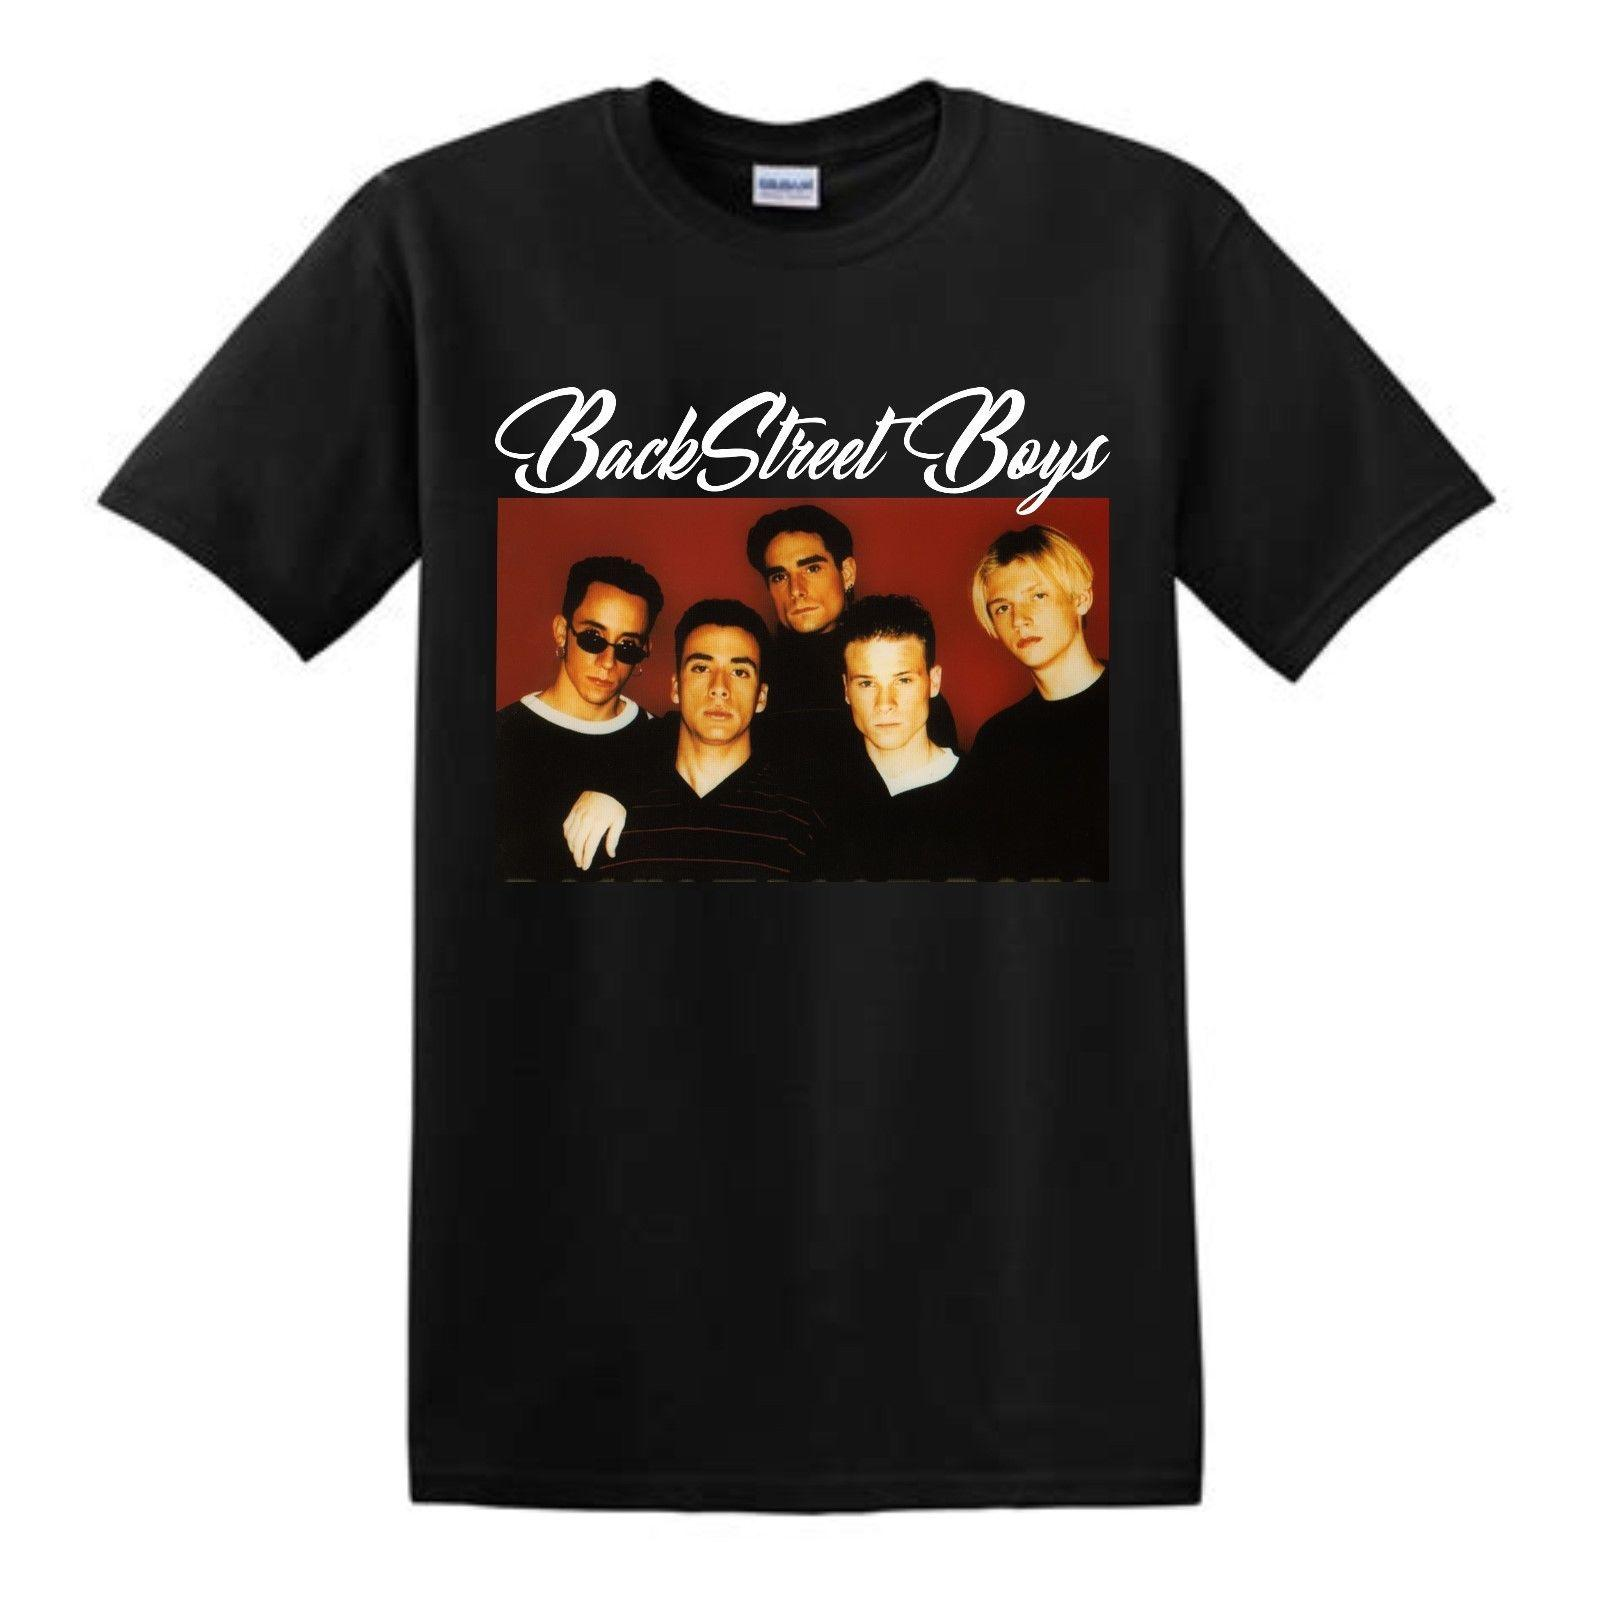 95dd56d9 Backstreet Boys T Shirt, American Vocal Group,Free Delivery T Shirt  Purchase Tee Shirt A Day From Uniquedesigntee, $11.01| DHgate.Com